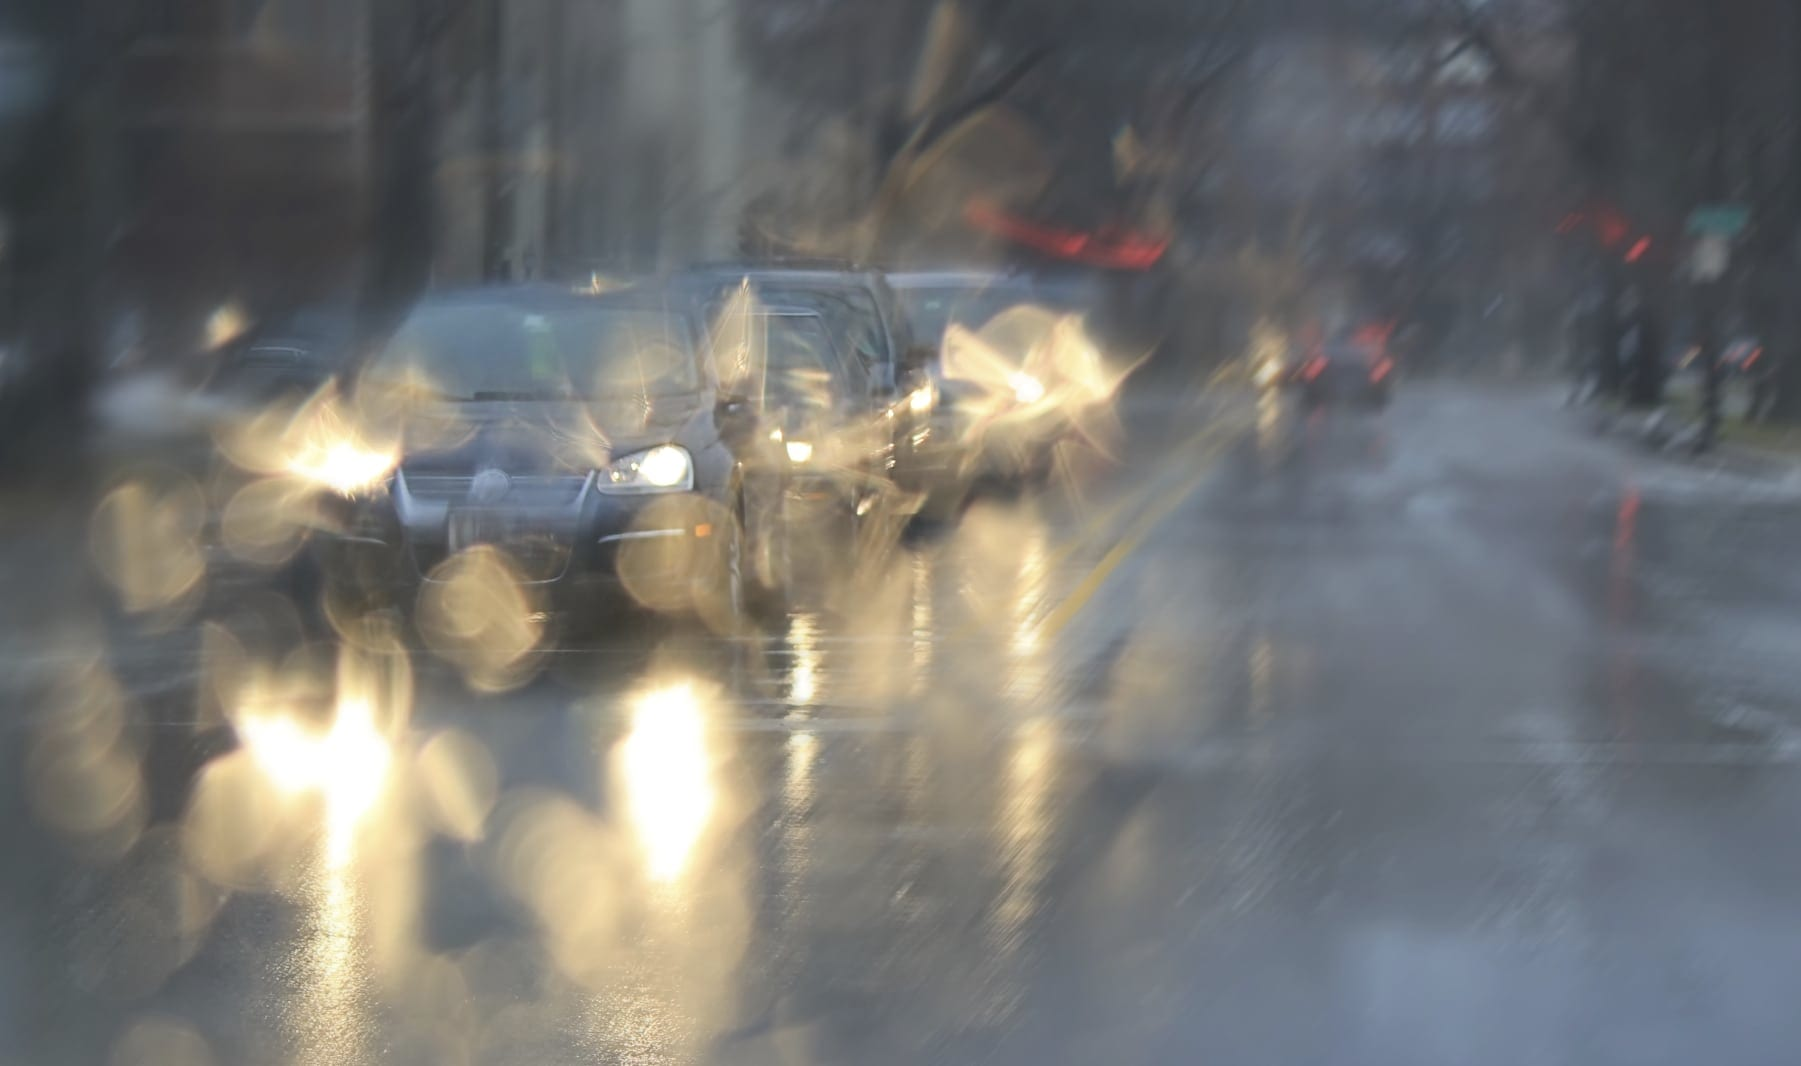 Traffic Jam In Rainy Weather Stock Photo